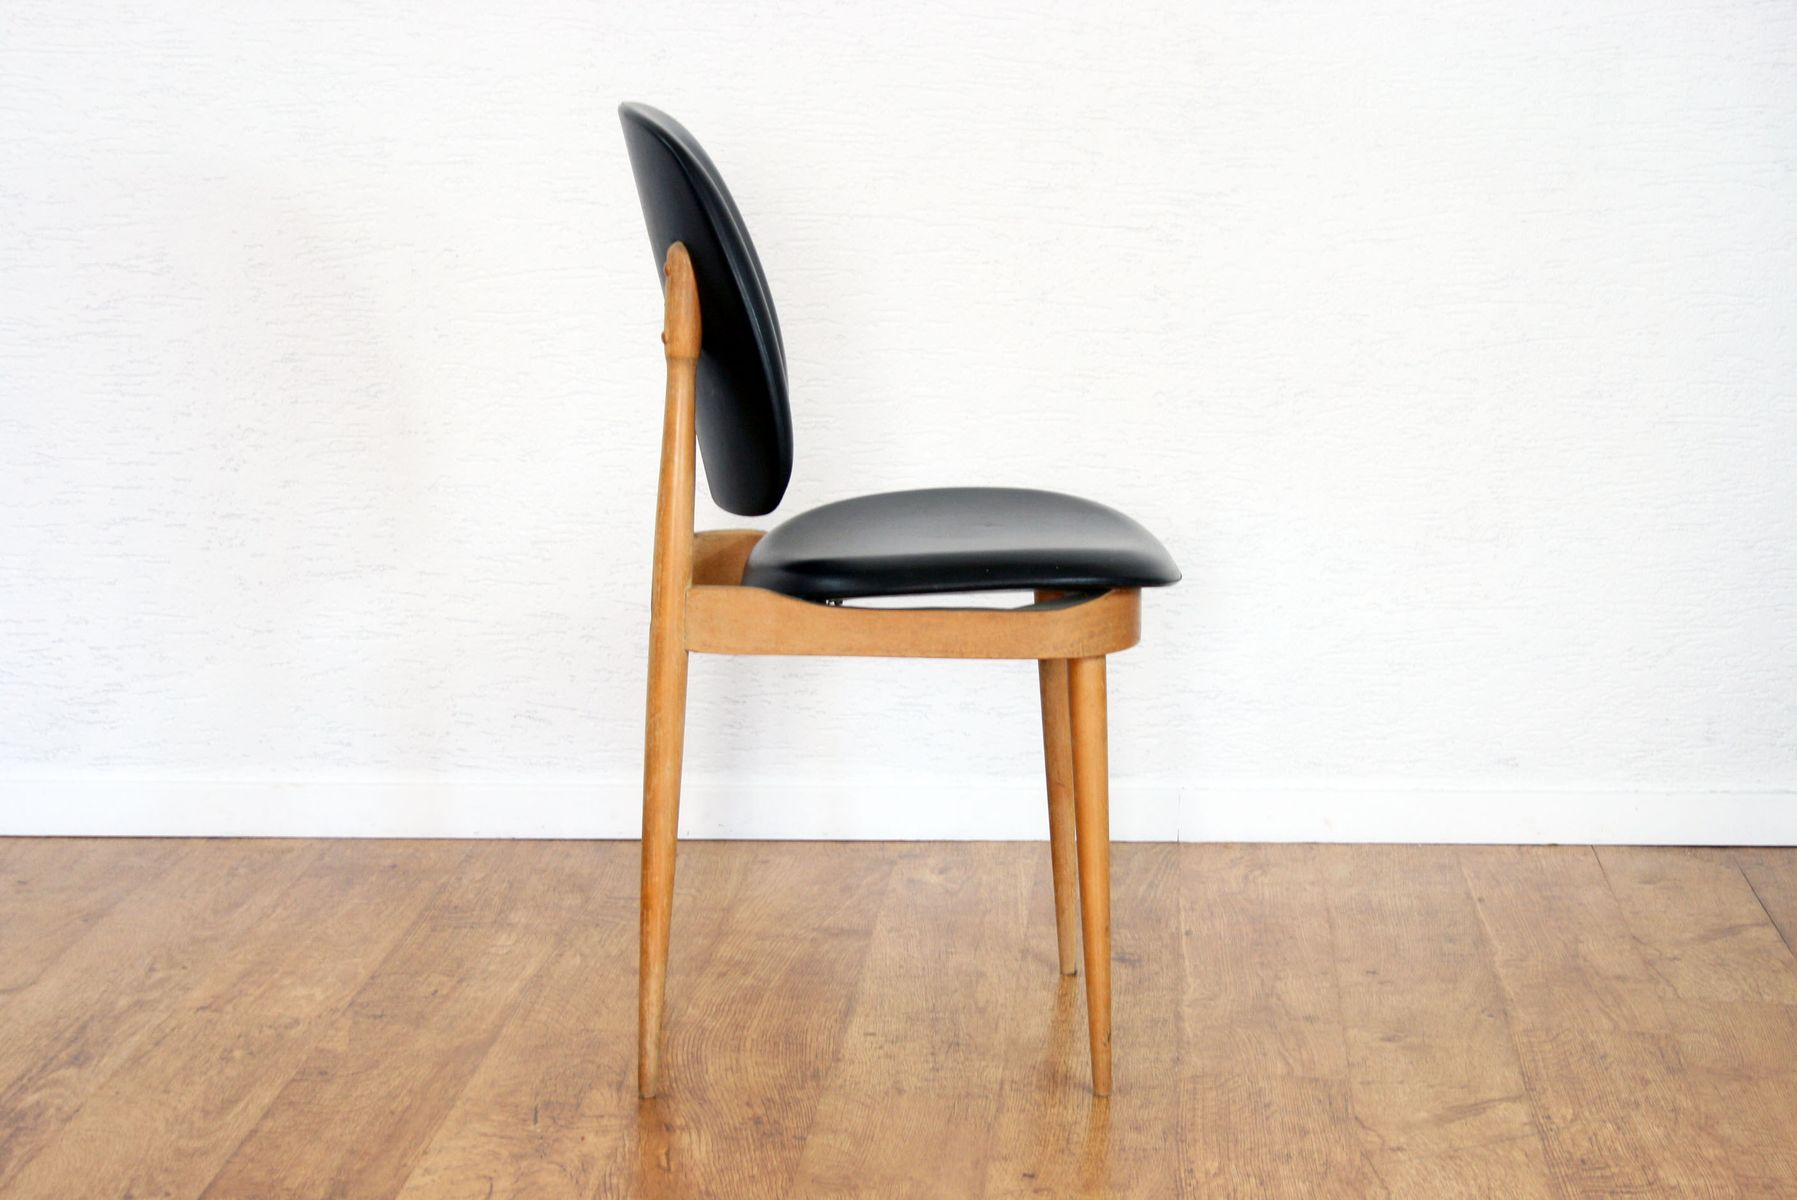 Vintage Solid Beech U0026 Black Pine Chair By Pierre Guariche